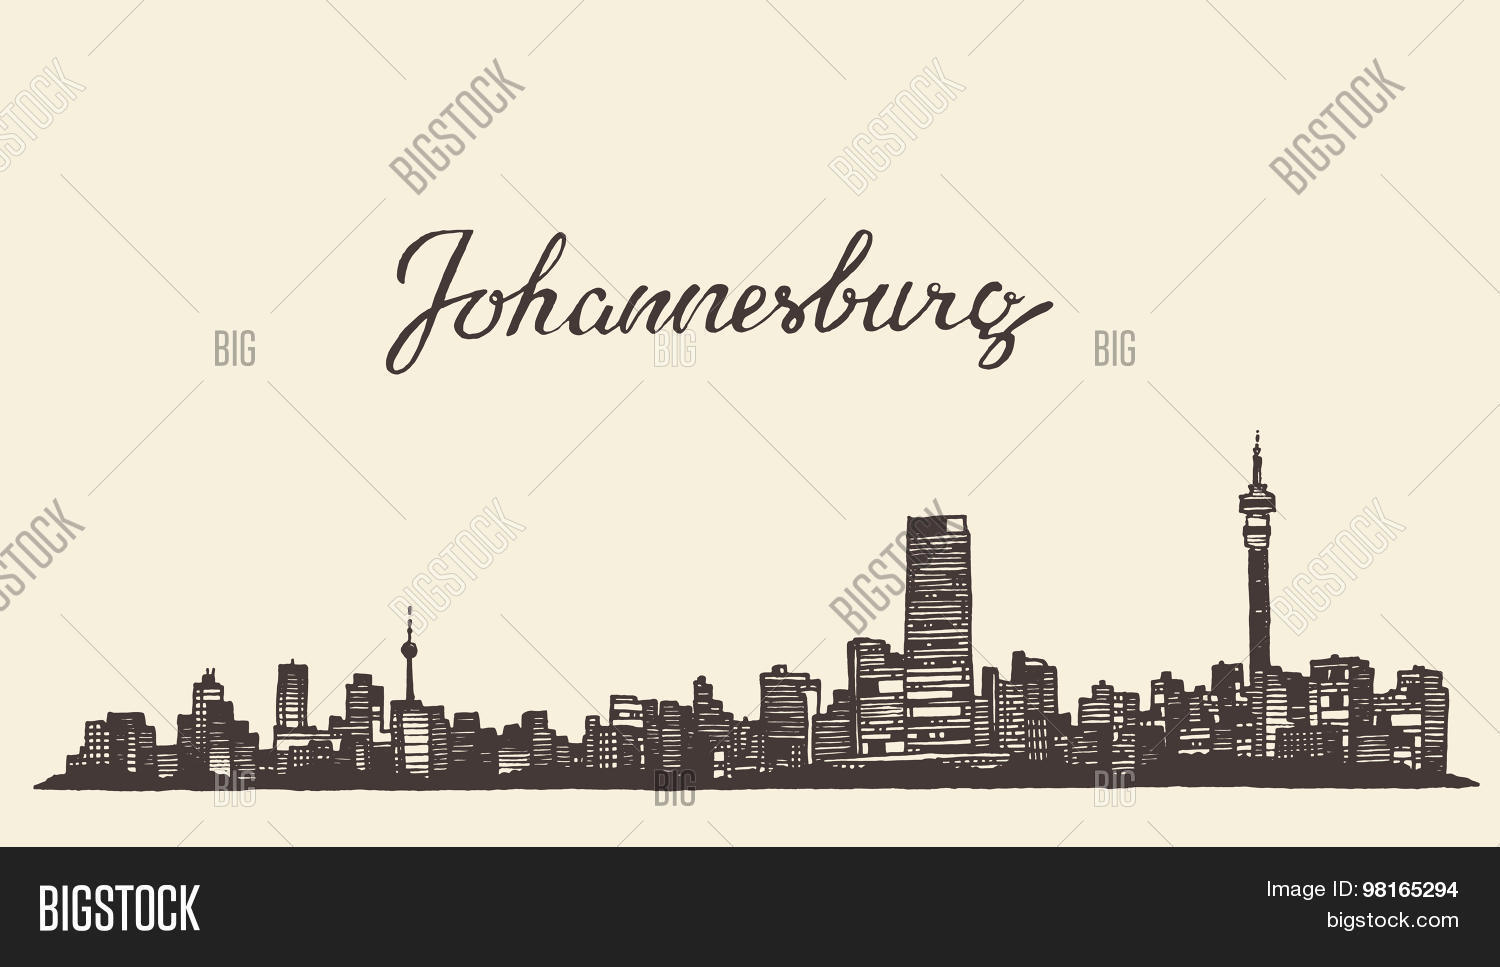 Johannesburg skyline vector photo free trial bigstock johannesburg skyline vector engraved drawn sketch thecheapjerseys Images